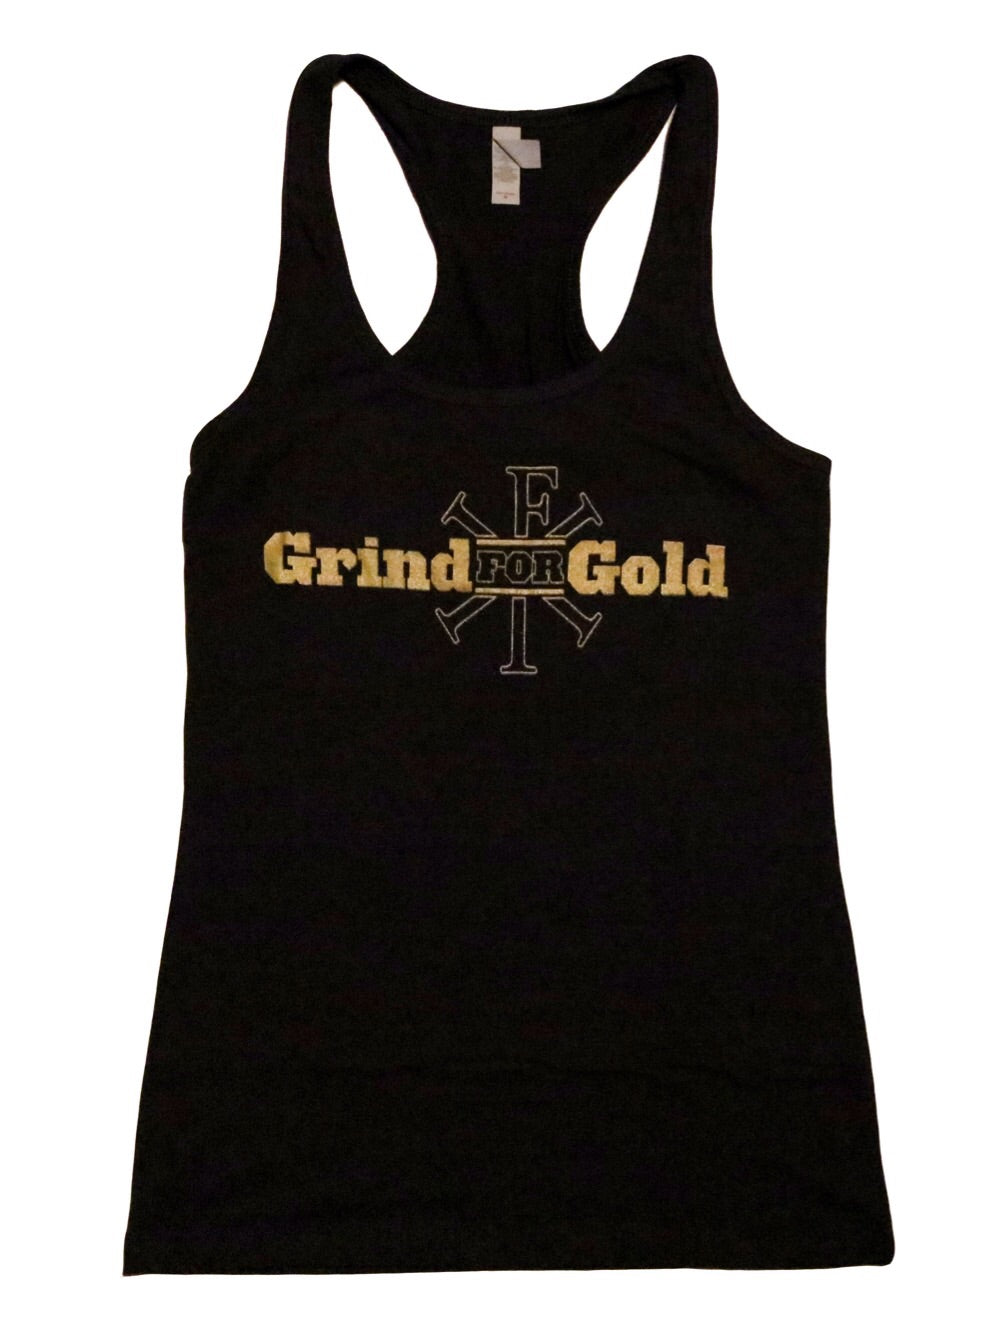 Grind for Gold women's tank